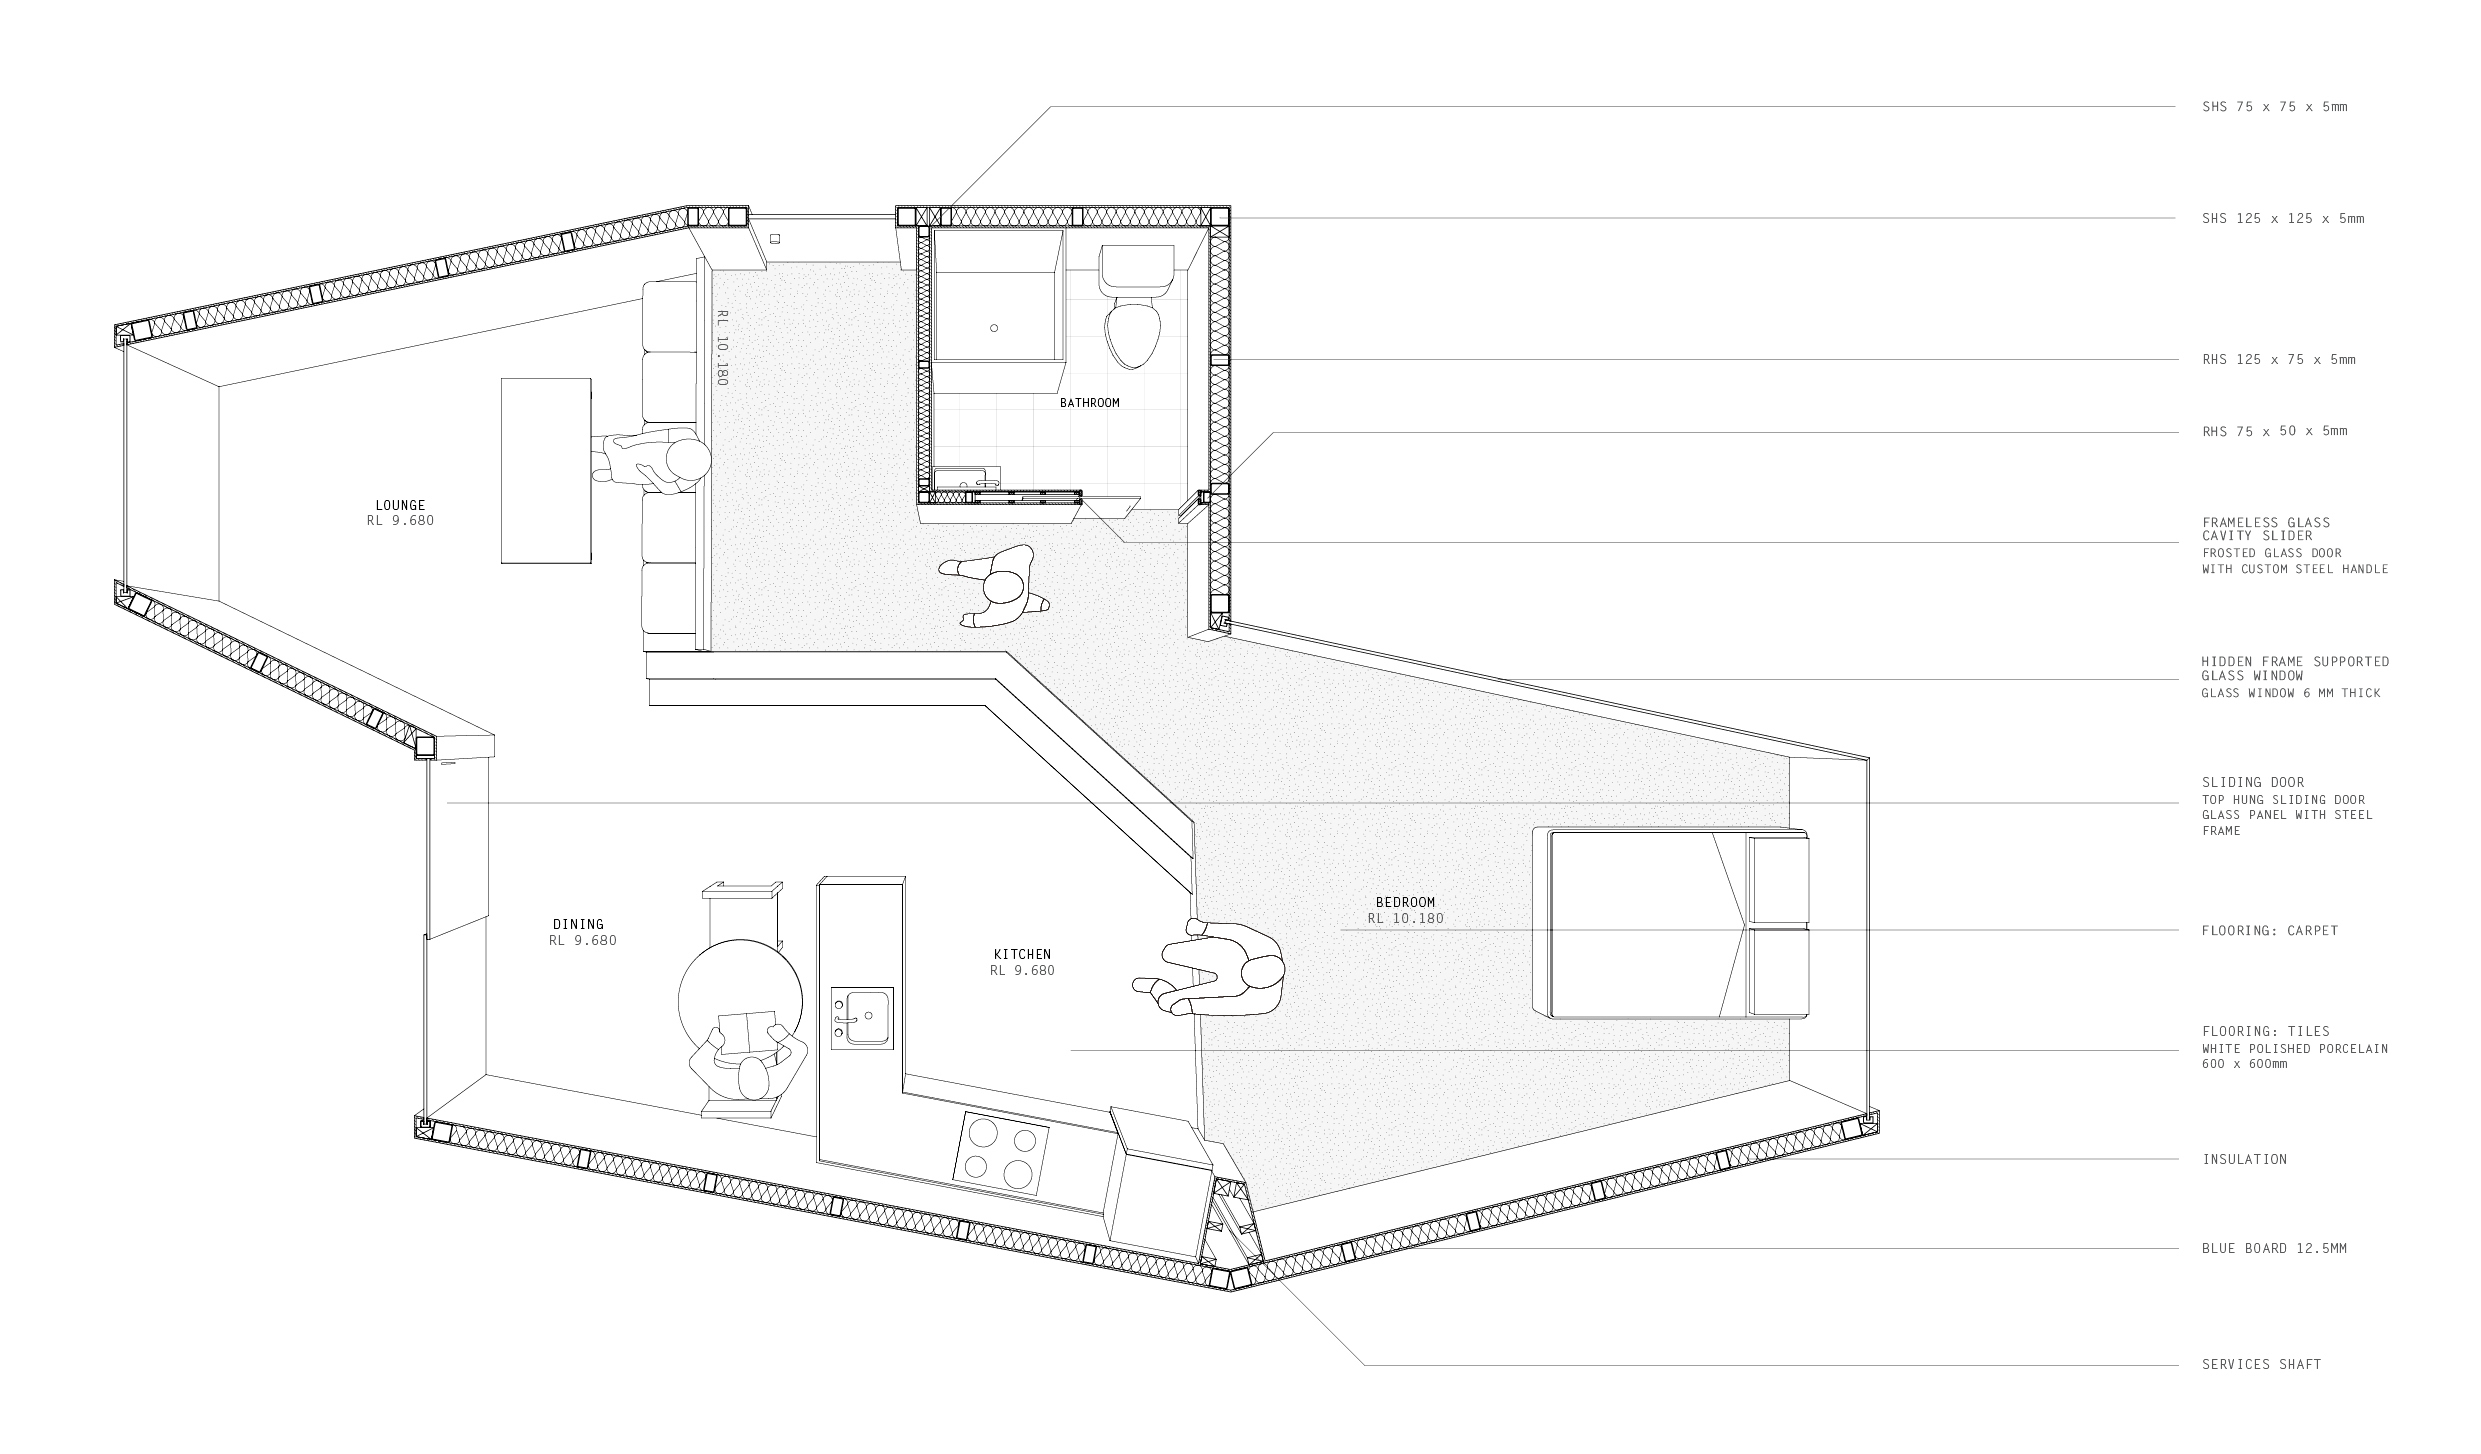 Plan of one apartment module.